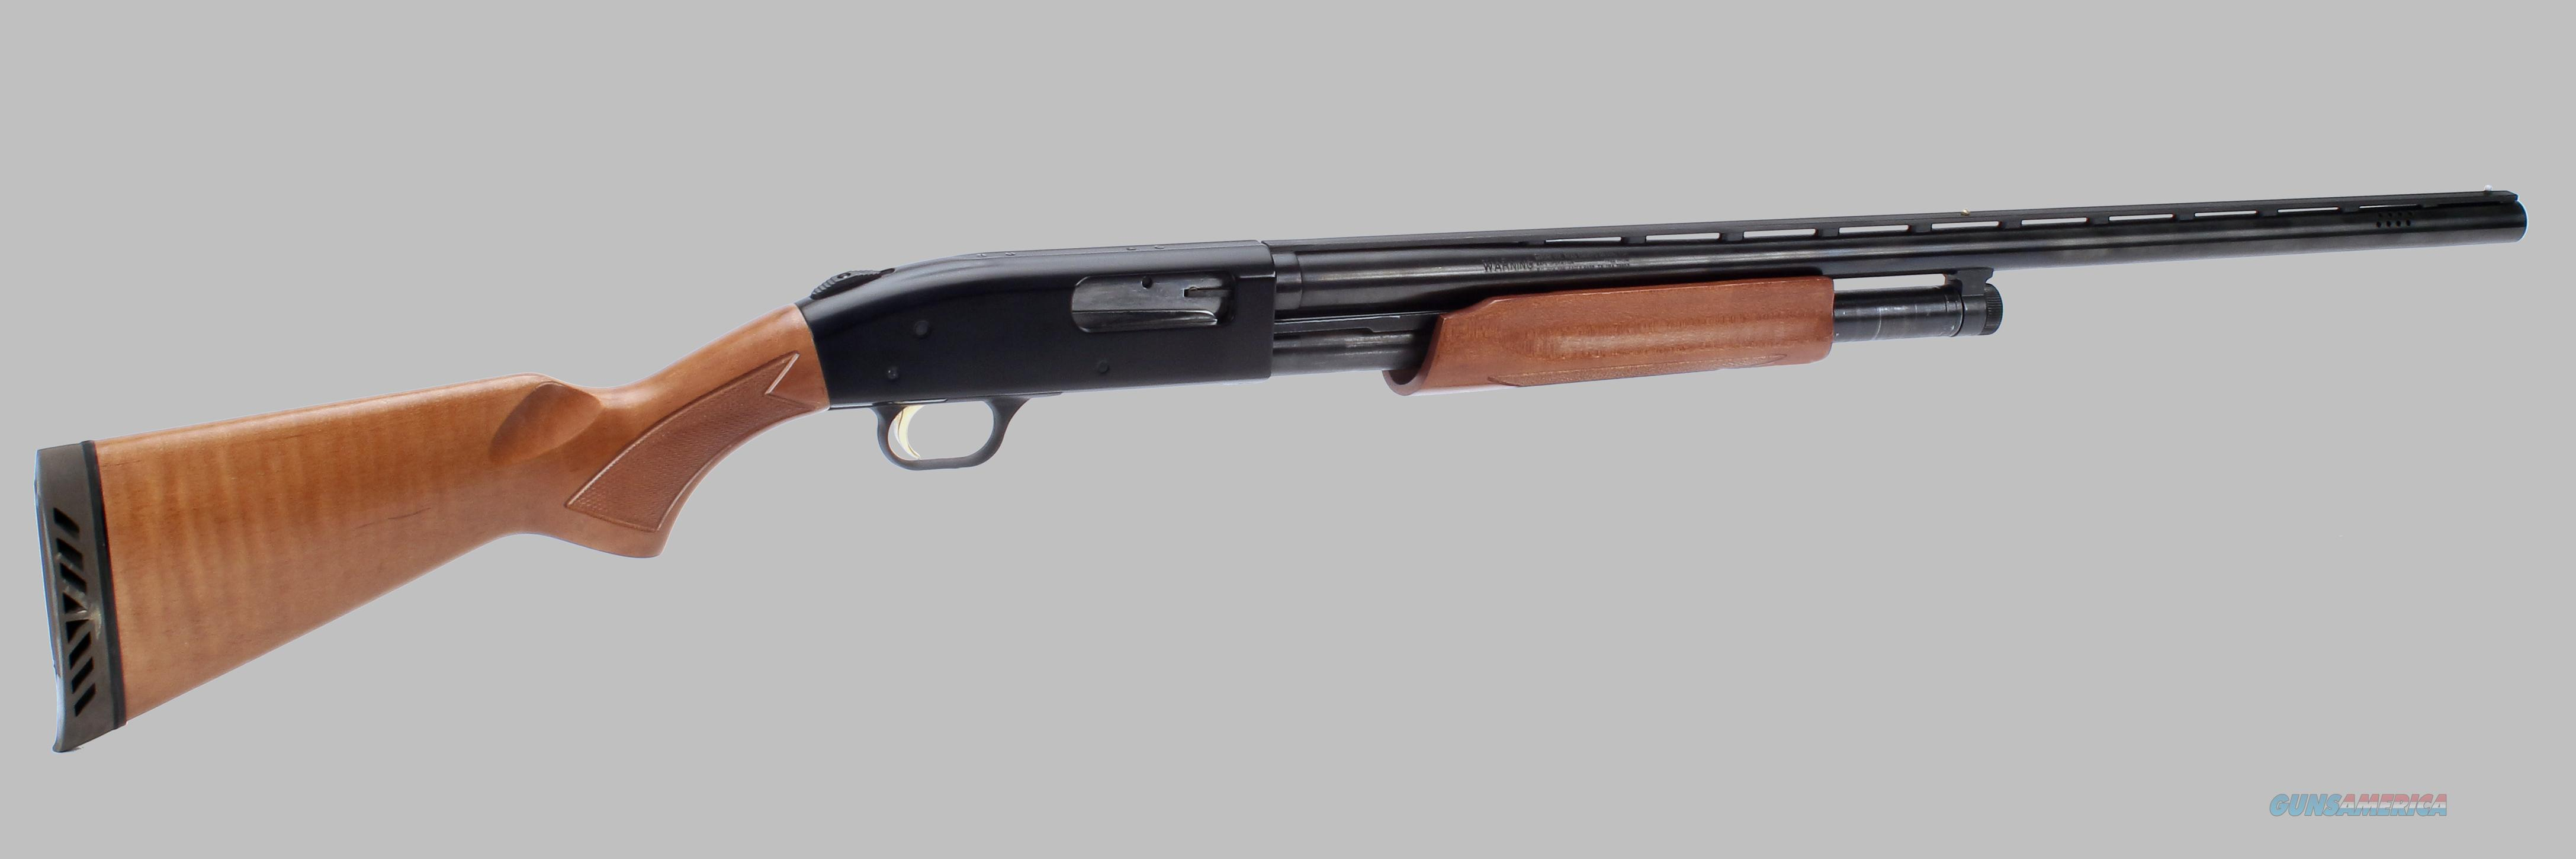 Mossberg Shotgun Model 500  Guns > Shotguns > Mossberg Shotguns > Pump > Sporting